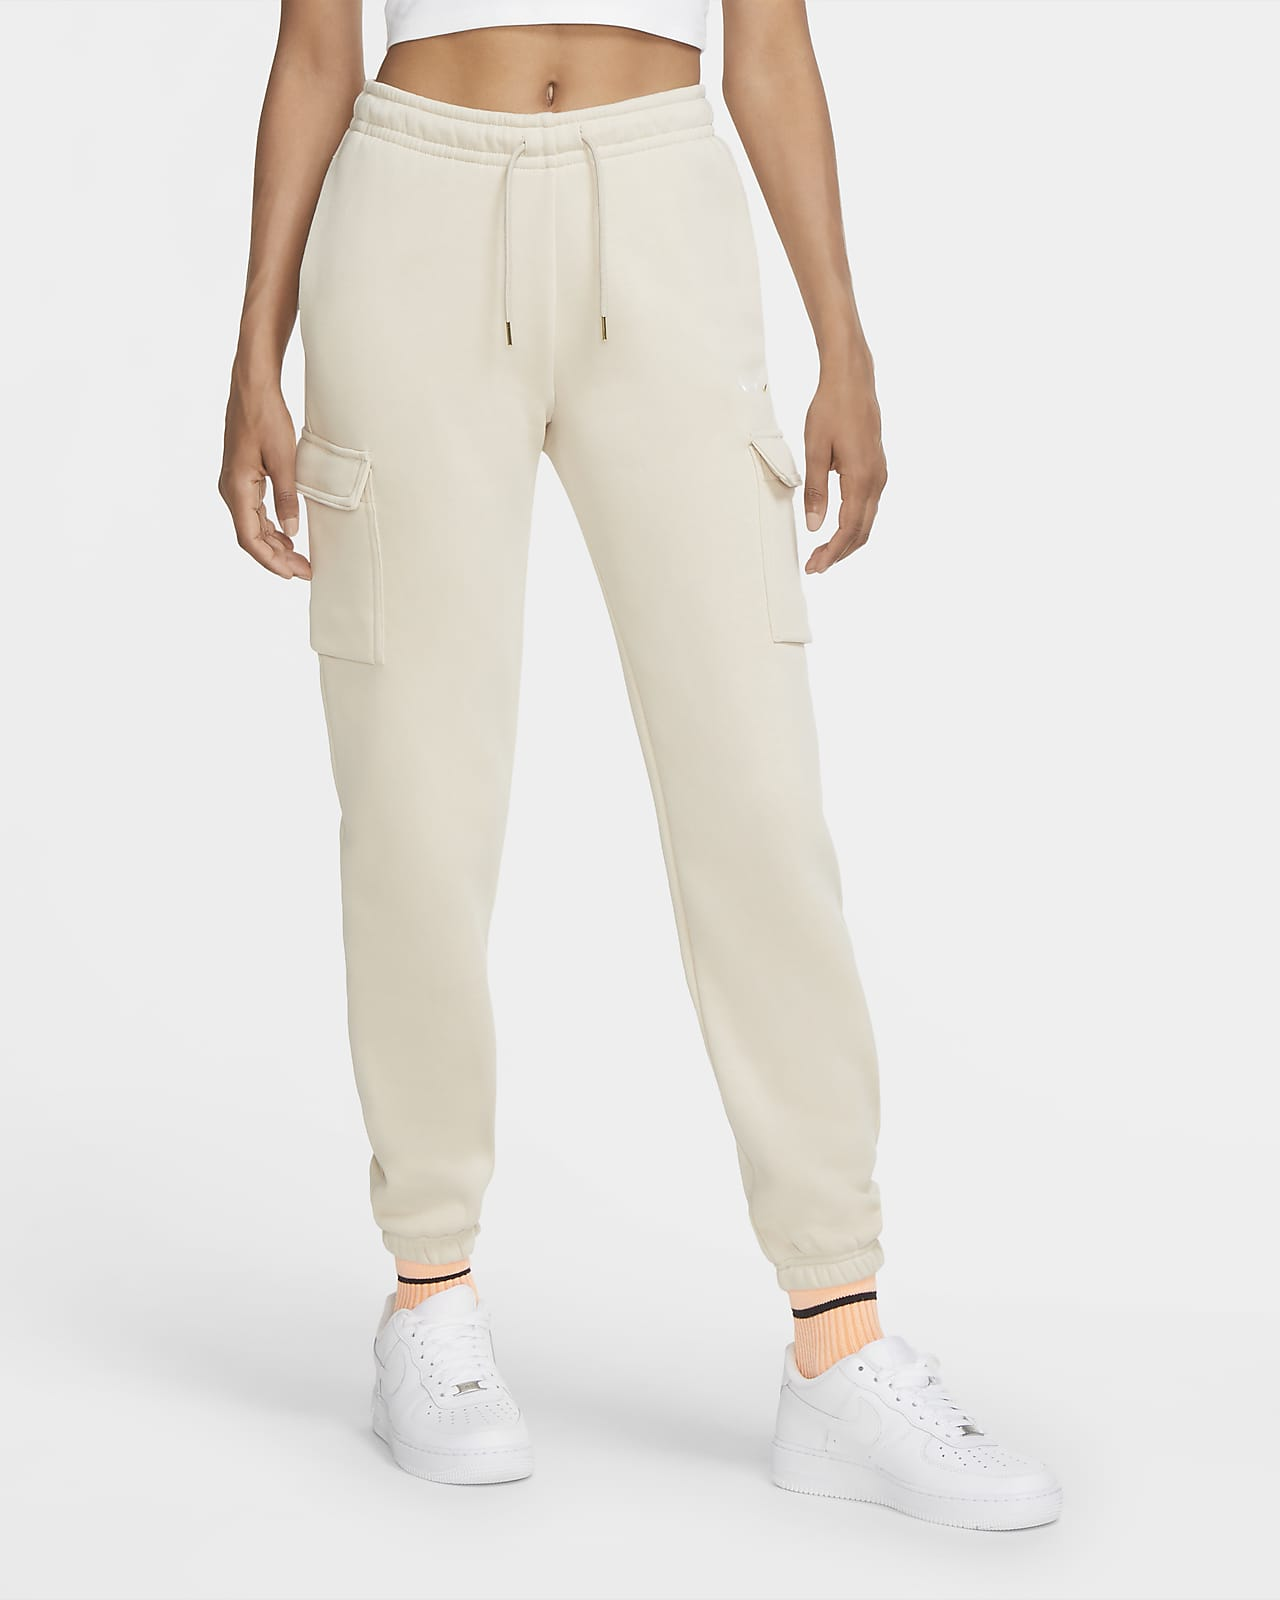 Nike Sportswear Women's Loose-Fit Fleece Cargo Trousers